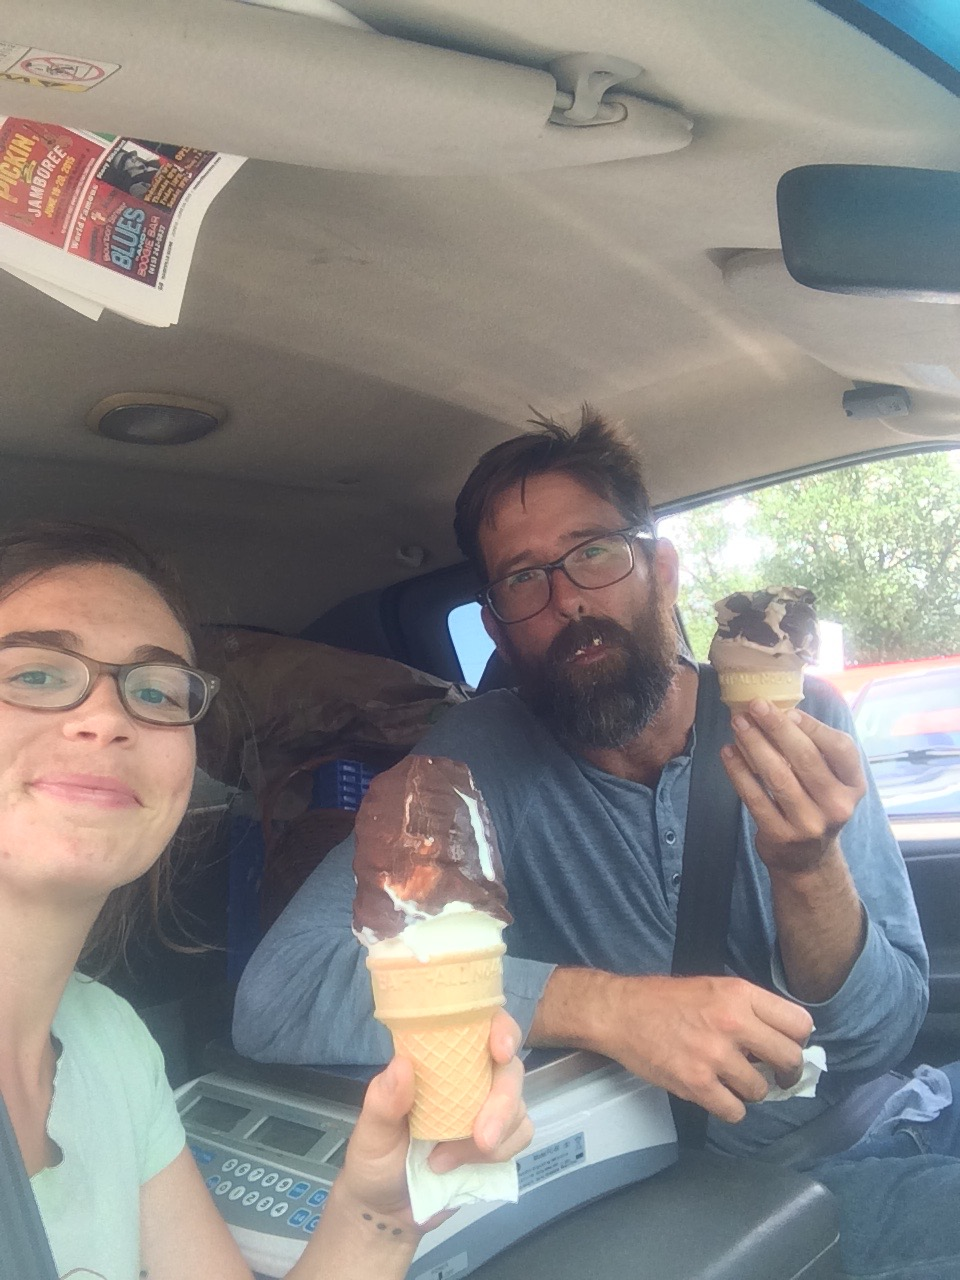 Well deserved dipped cone from bobby's dairy dip after market!